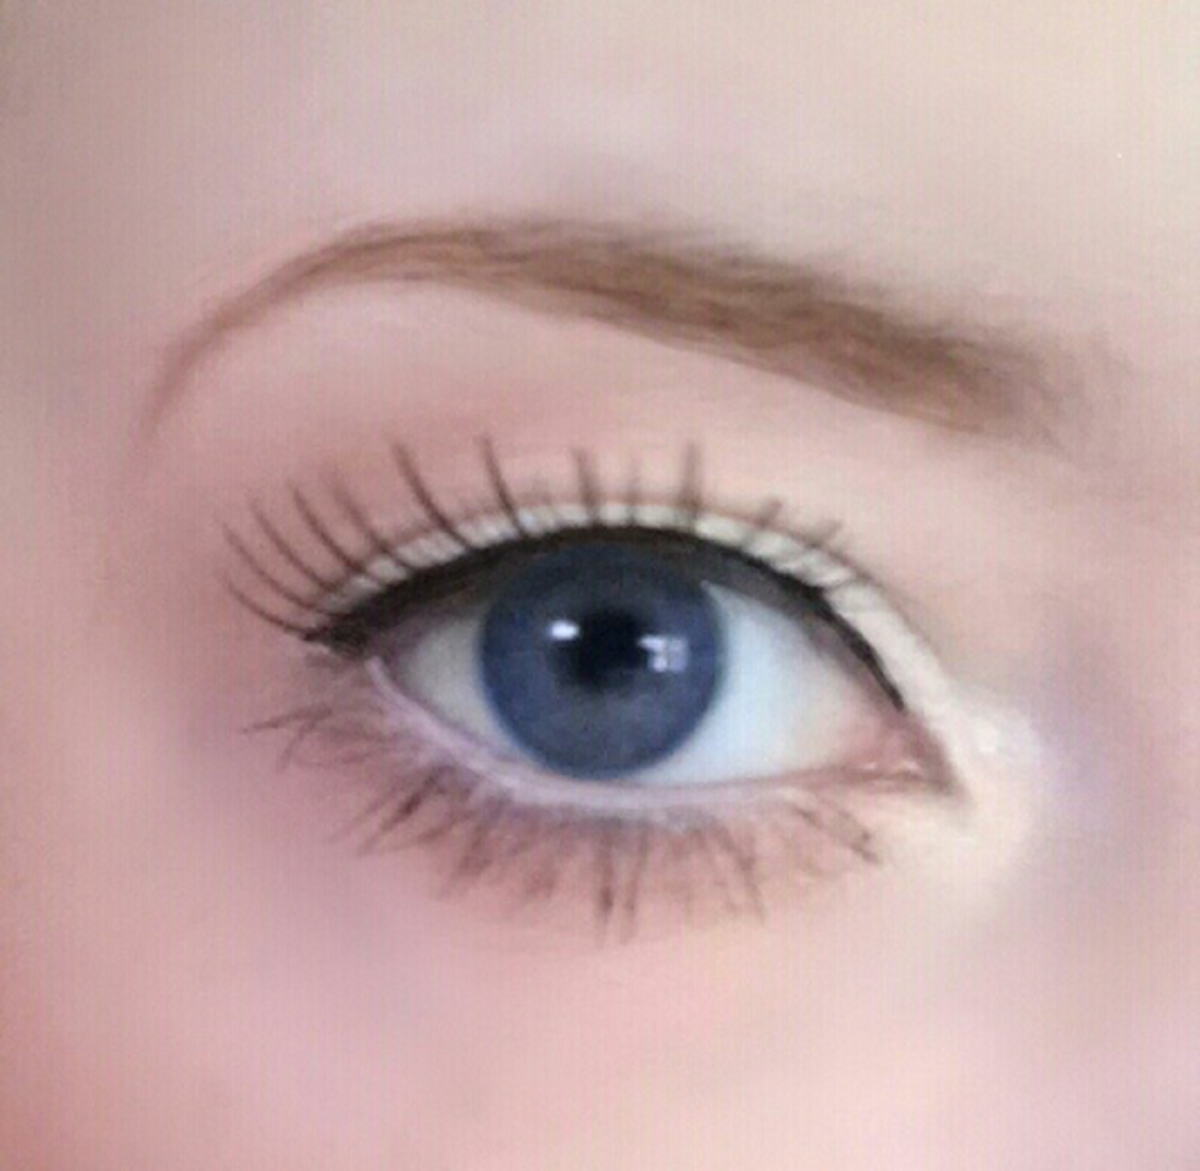 My hooded eye shown with a simple black liquid liner over top.